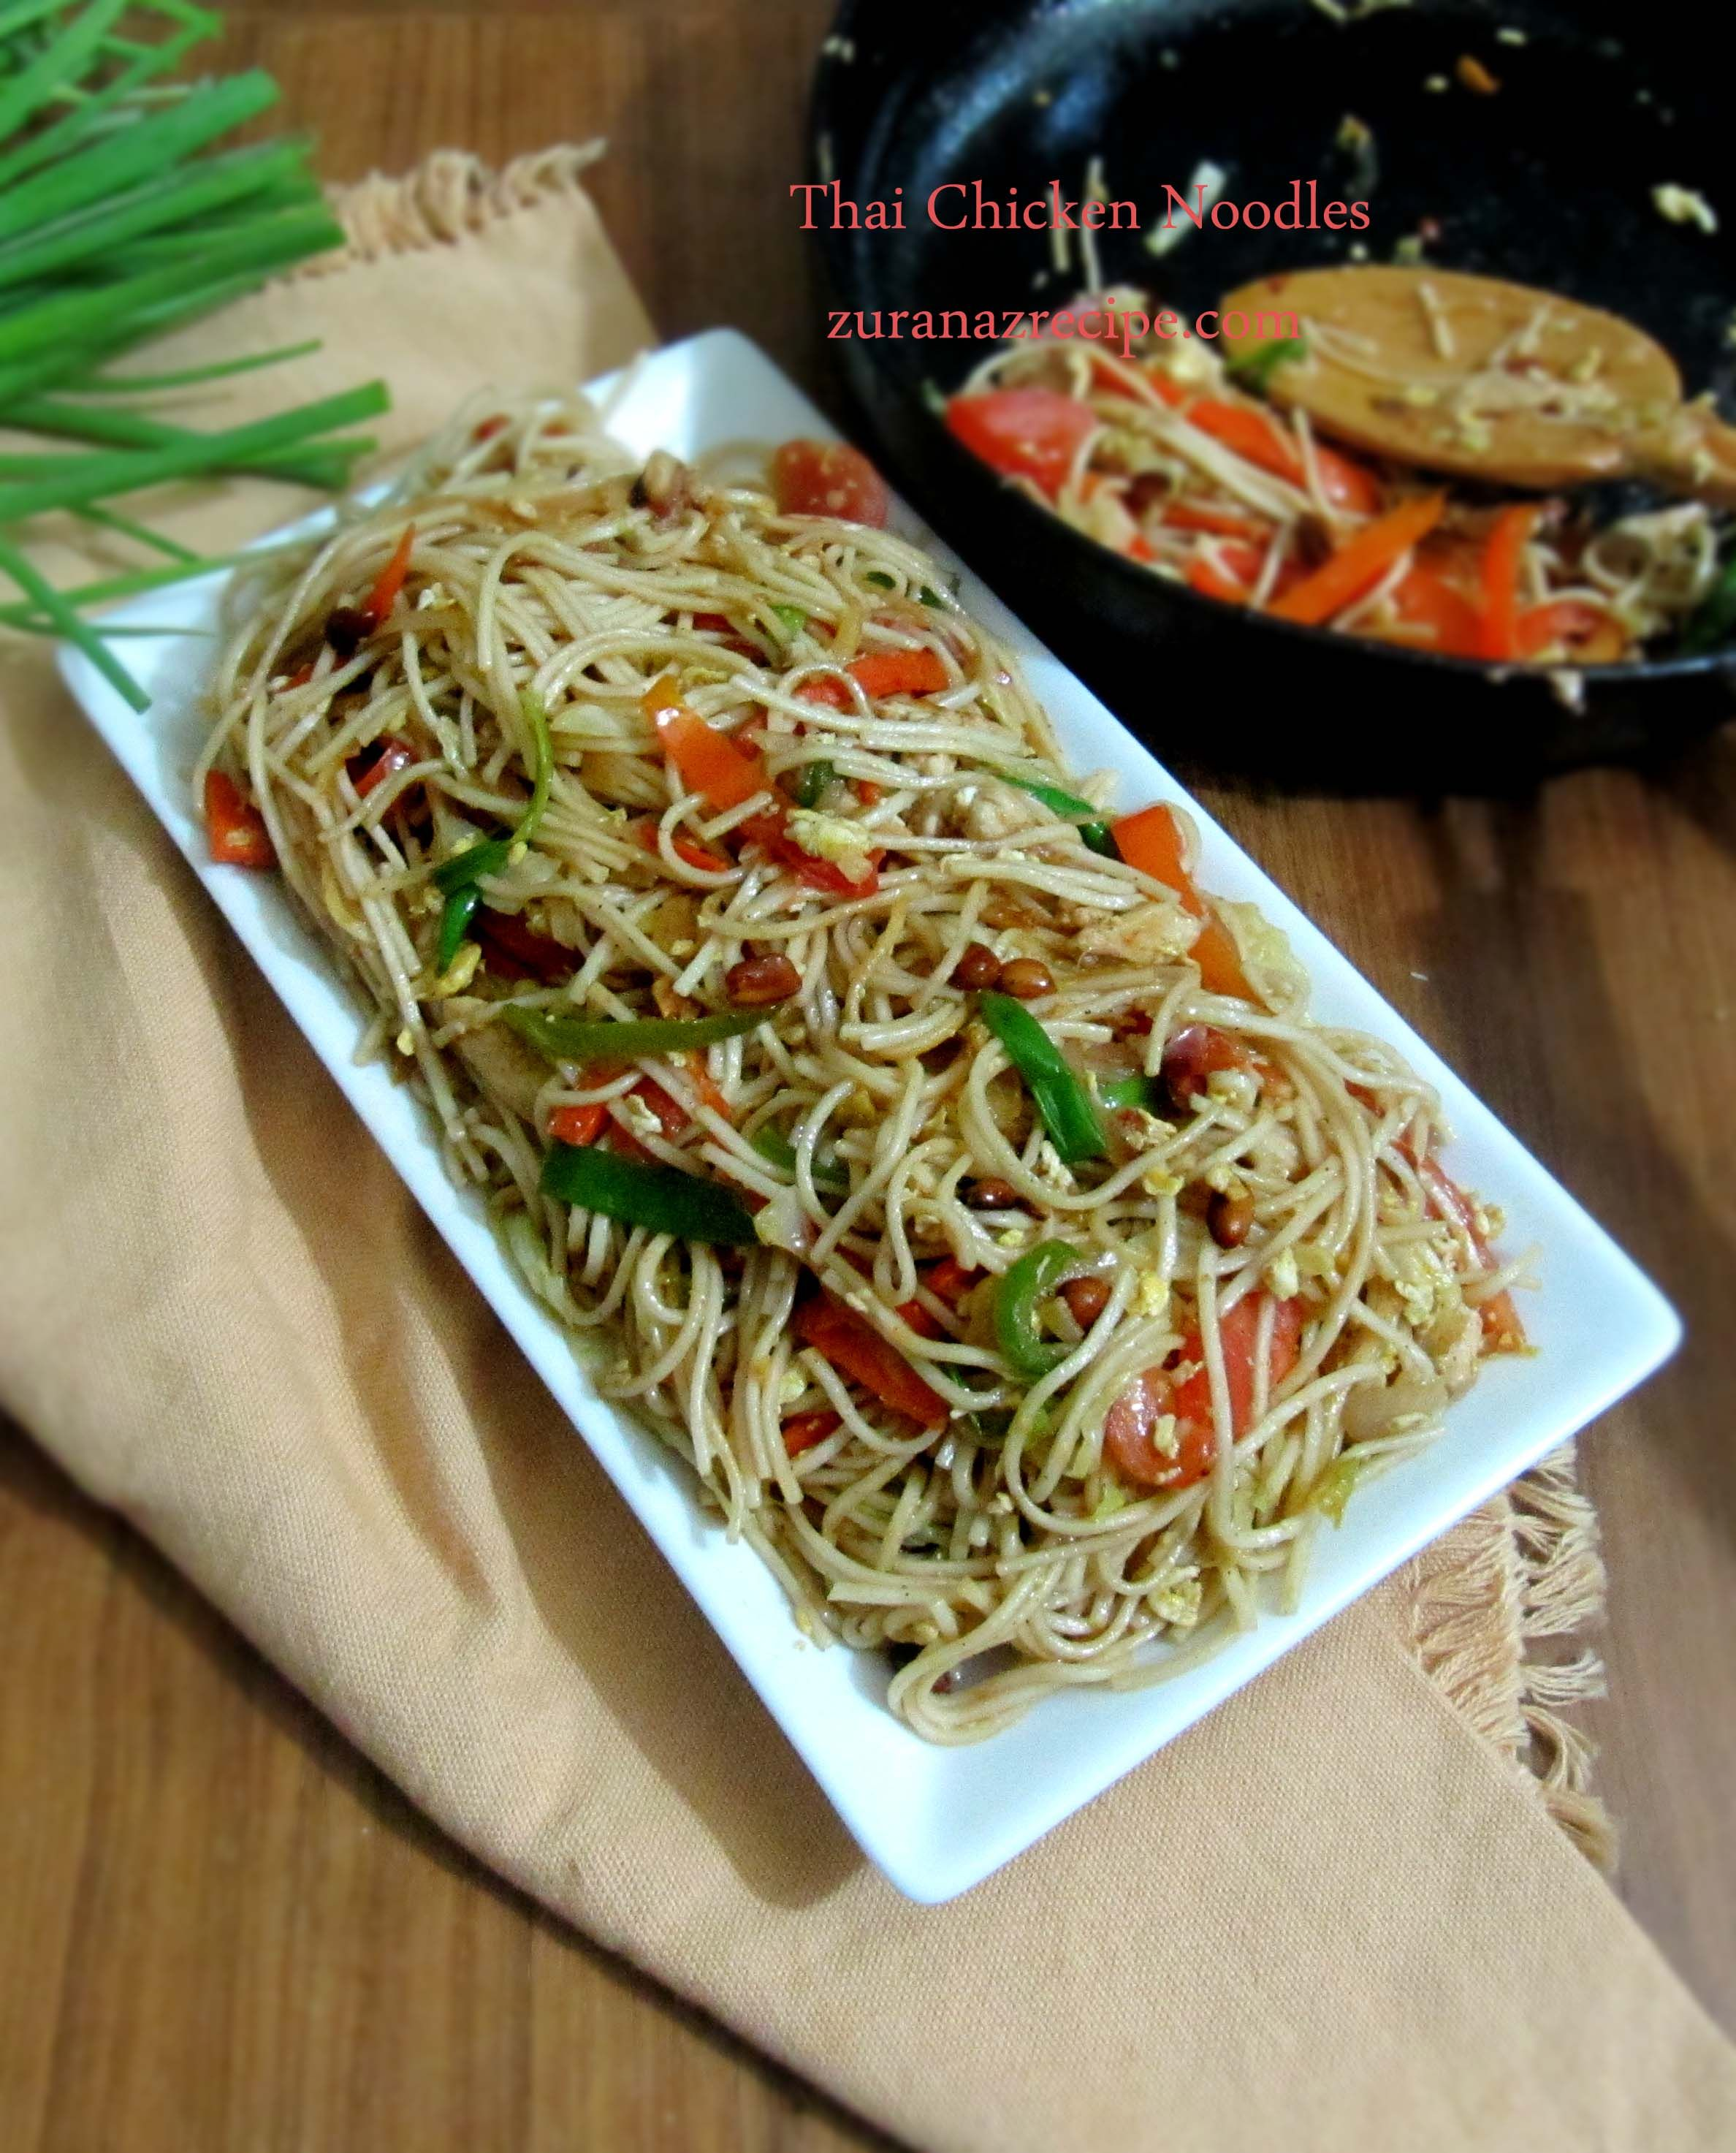 Thai chicken noodles bangla bangladeshi bengali food recipes thai chicken noodles detailed photo and video recipe basically its a popular indo chinese street food recipe served as a appetizer or snacks forumfinder Gallery